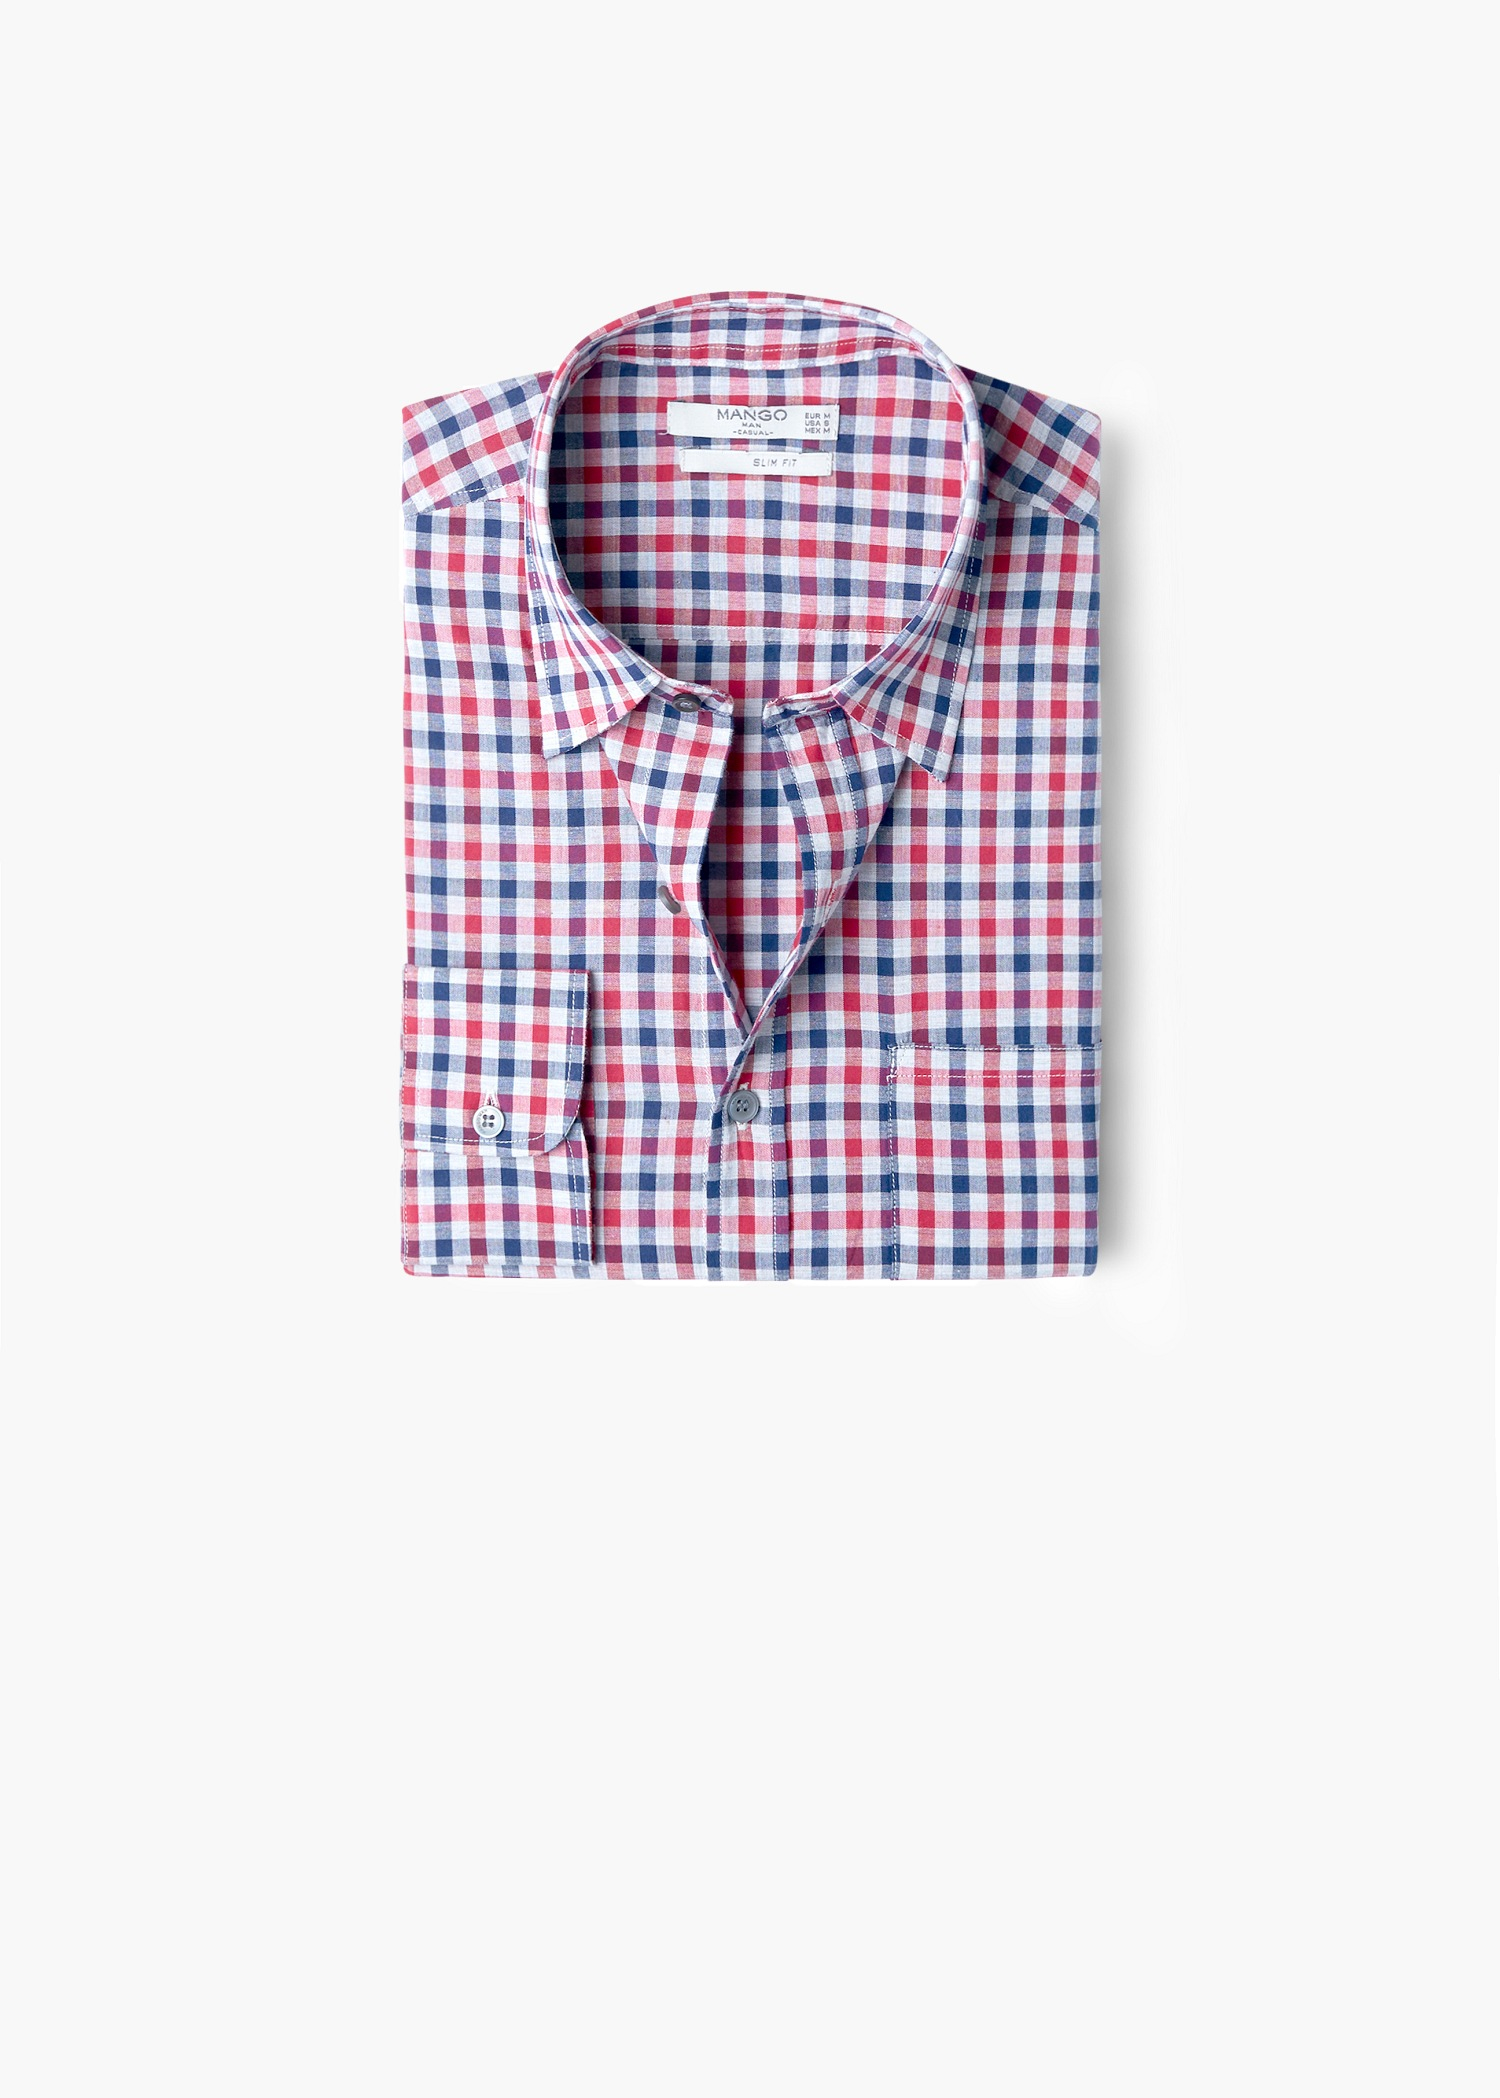 Mango Slim Fit Gingham Check Shirt In Red For Men Lyst